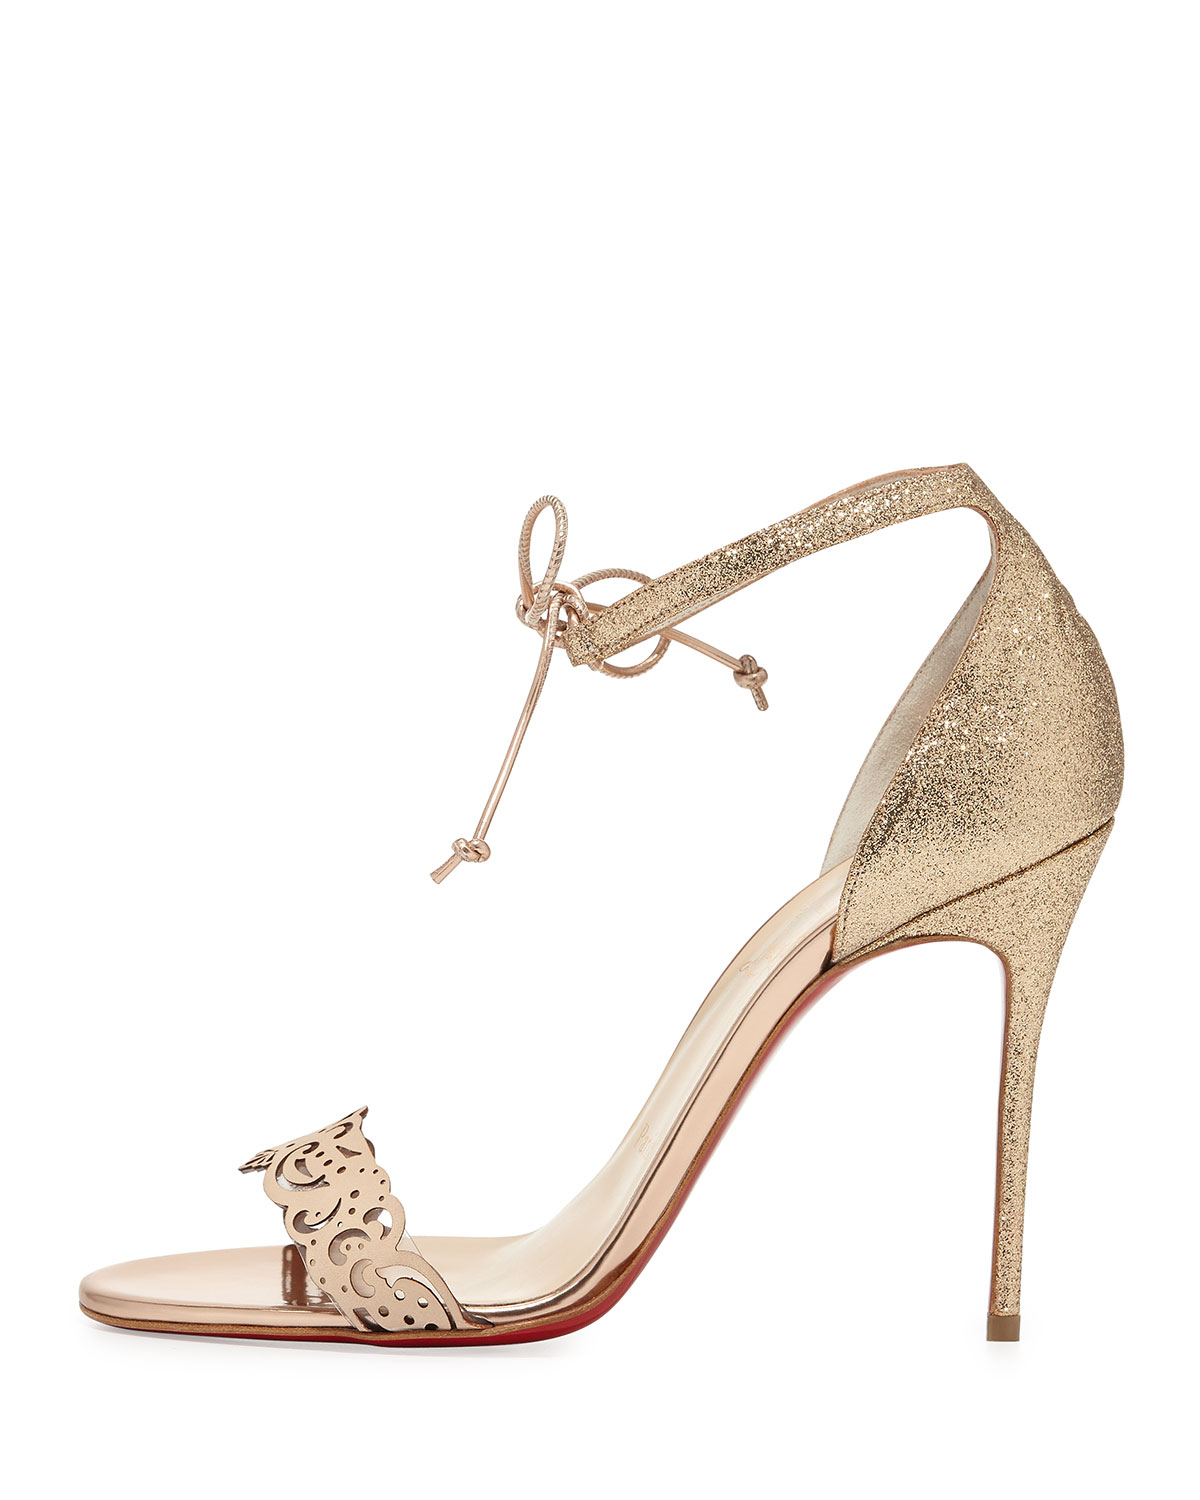 christian louboutin gold glitter sandals